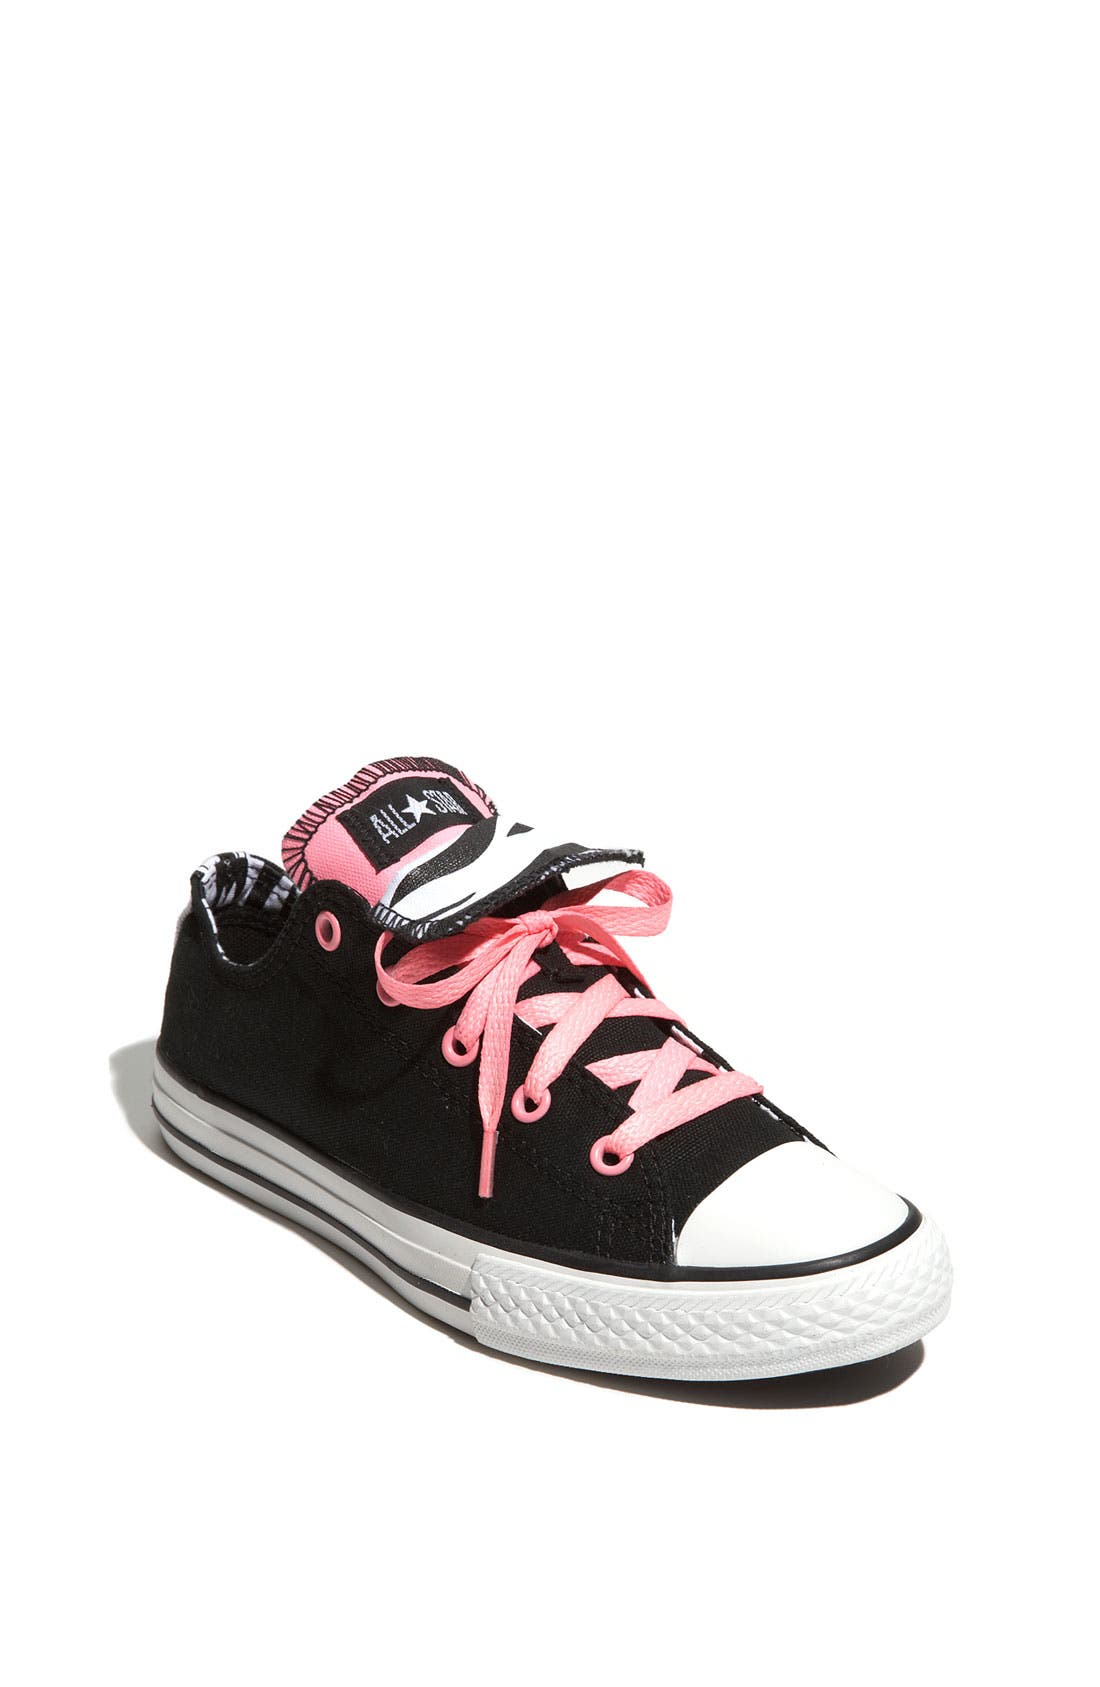 Main Image - Converse 'Glow Print' Sneaker (Toddler, Little Kid & Big Kid)